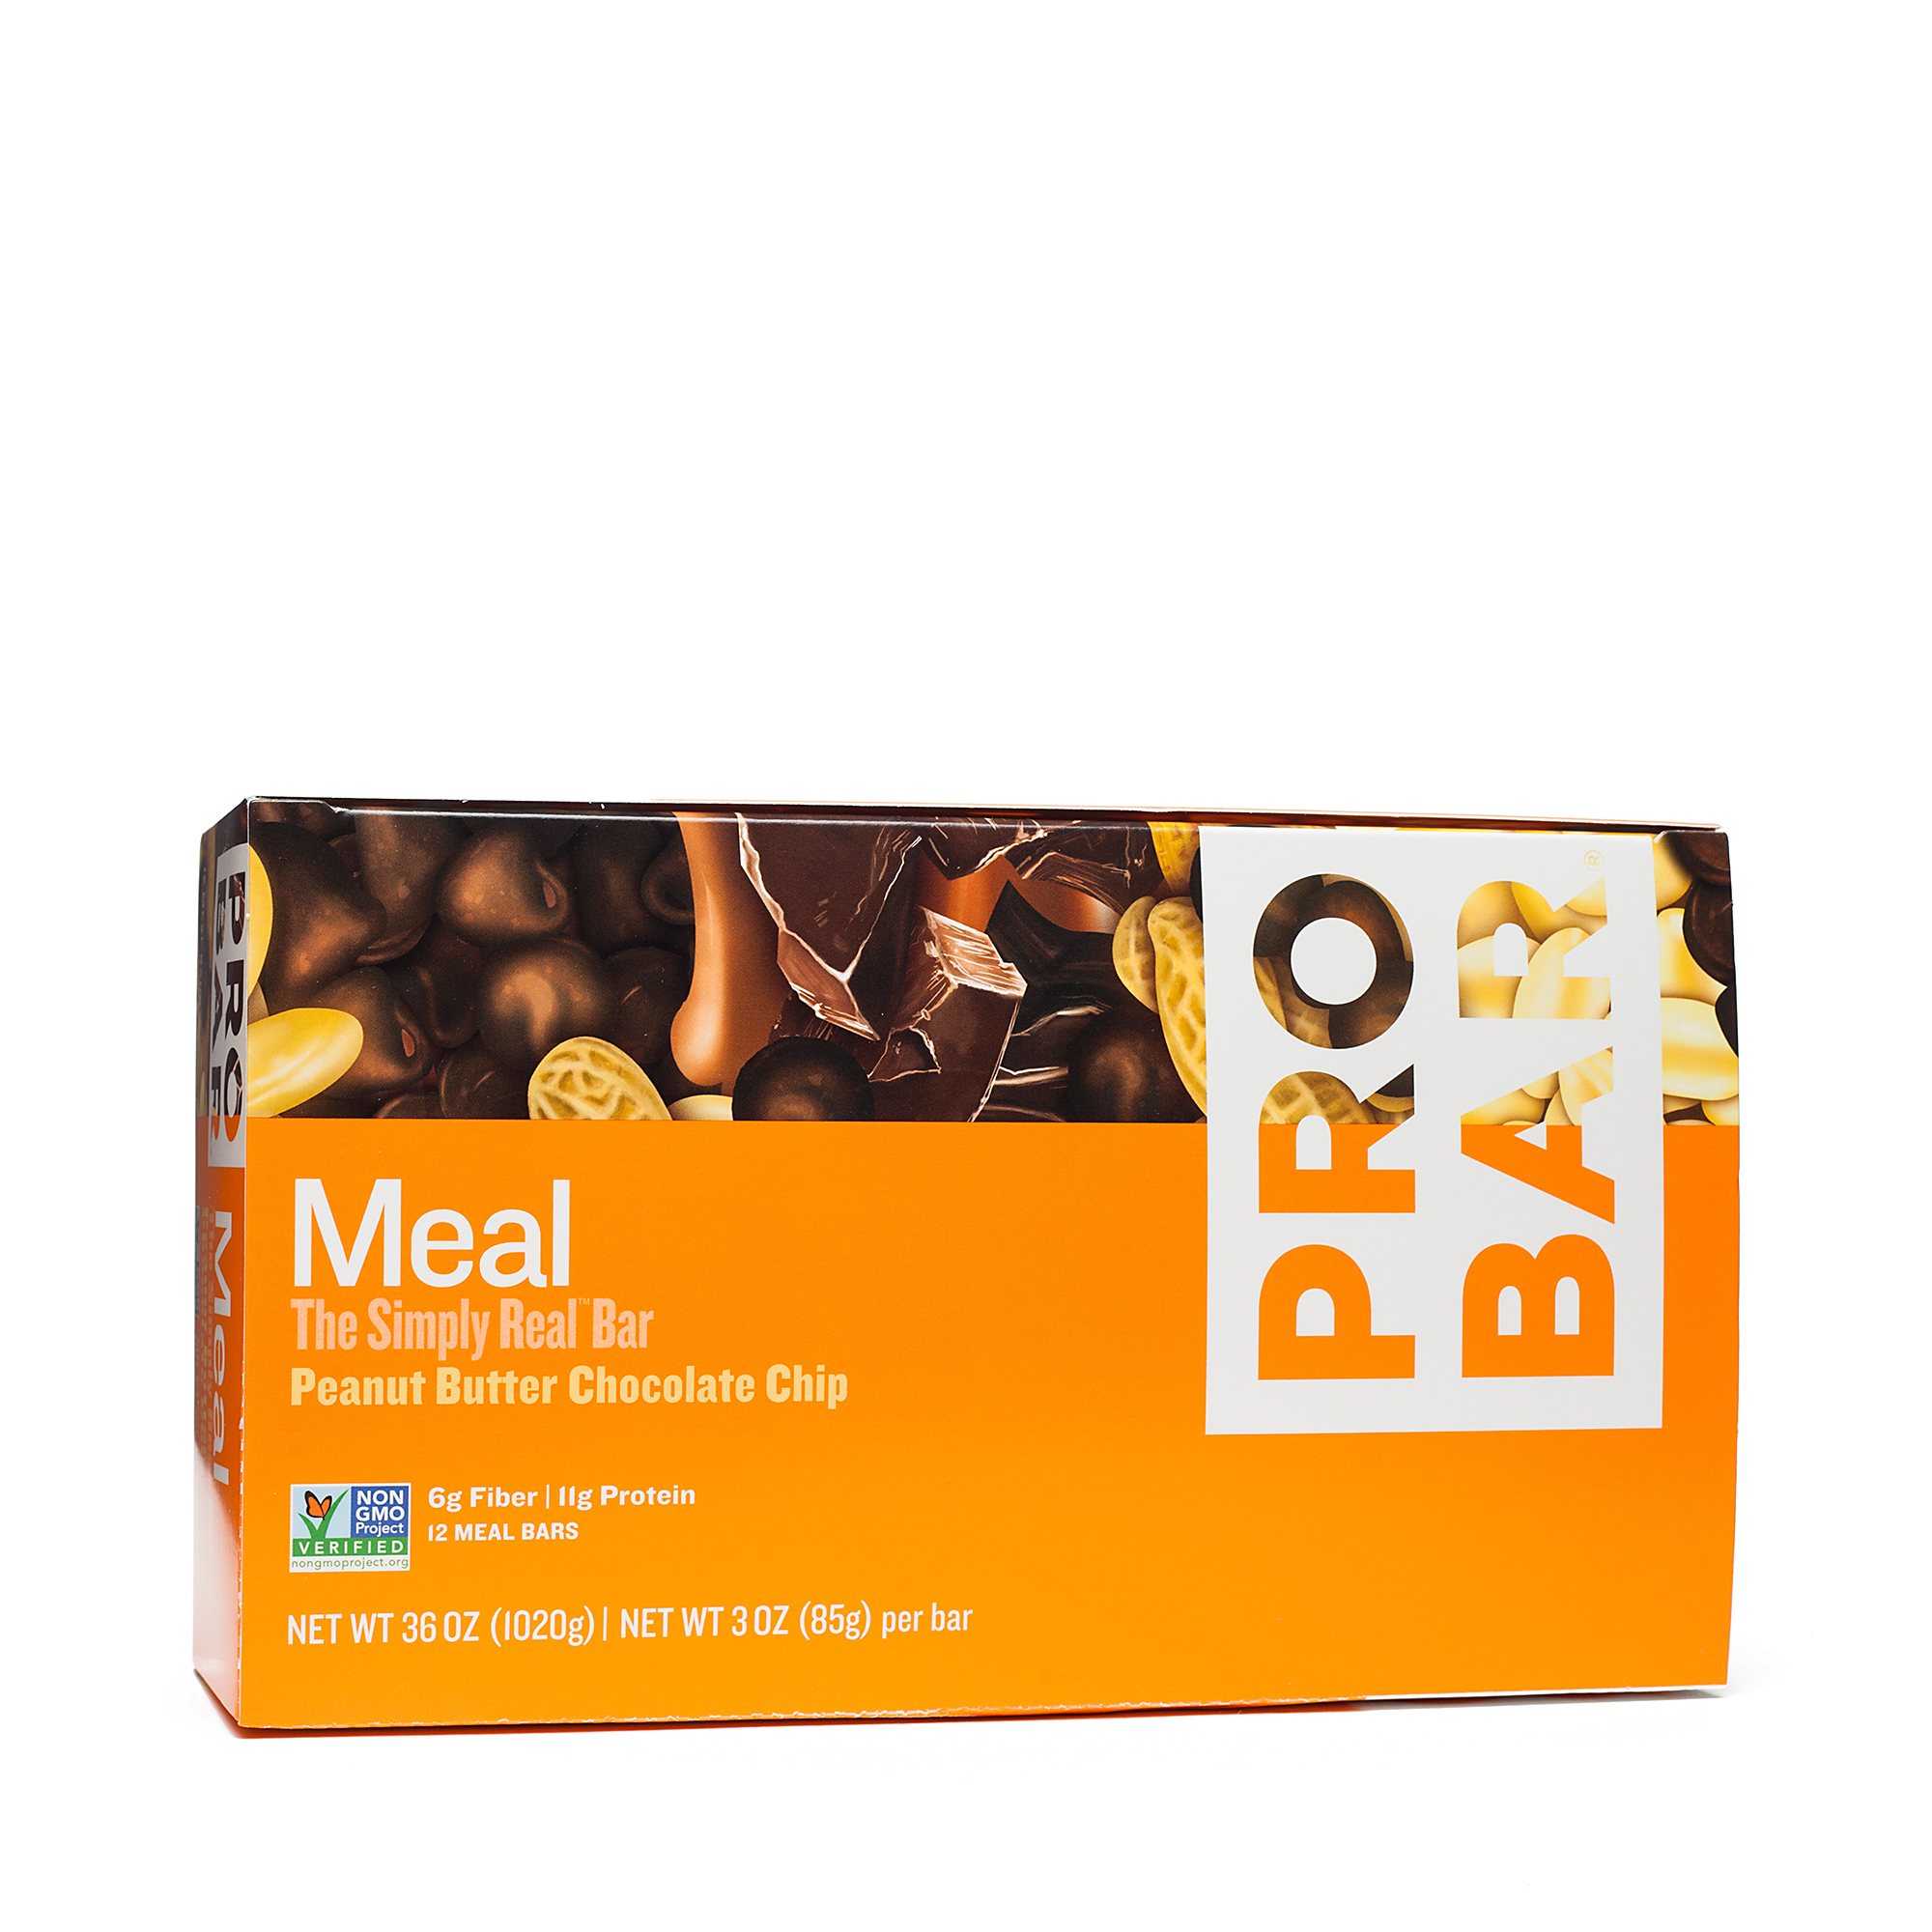 ProBar Peanut Butter Chocolate Chip Meal Bars Twelve 3 oz bars